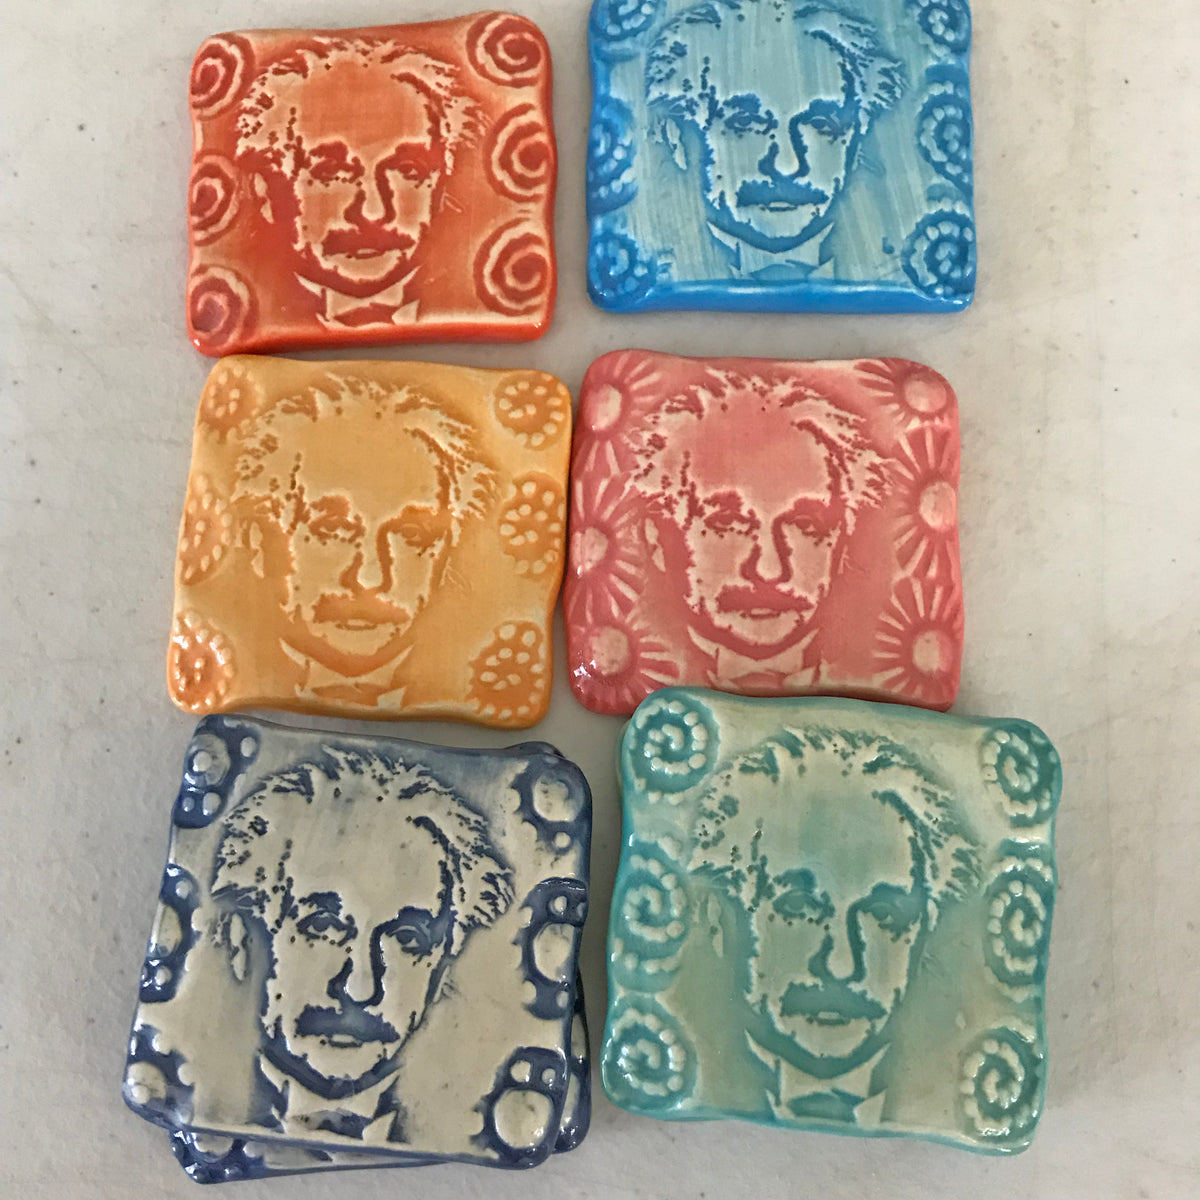 Handmade ceramic magnet with Albert Einstein's portrait embossed in the clay.  A unique process created by the potters of Oerth Studio.